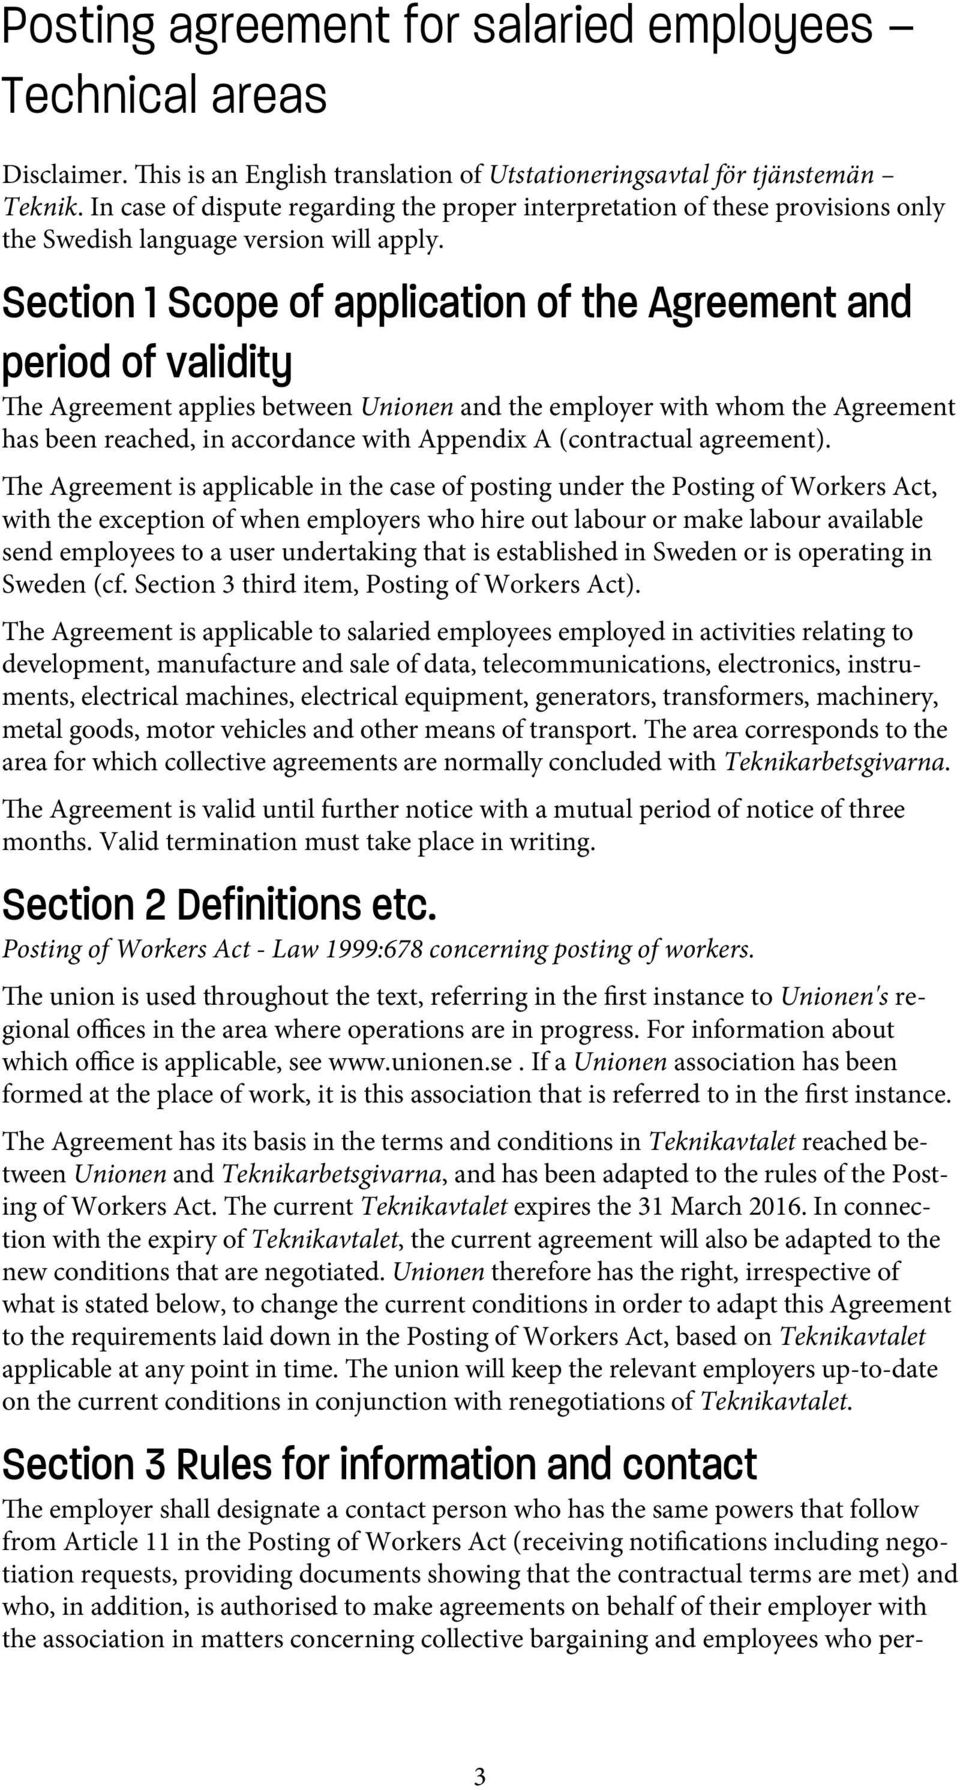 Section 1 Scope of application of the Agreement and period of validity The Agreement applies between Unionen and the employer with whom the Agreement has been reached, in accordance with Appendix A